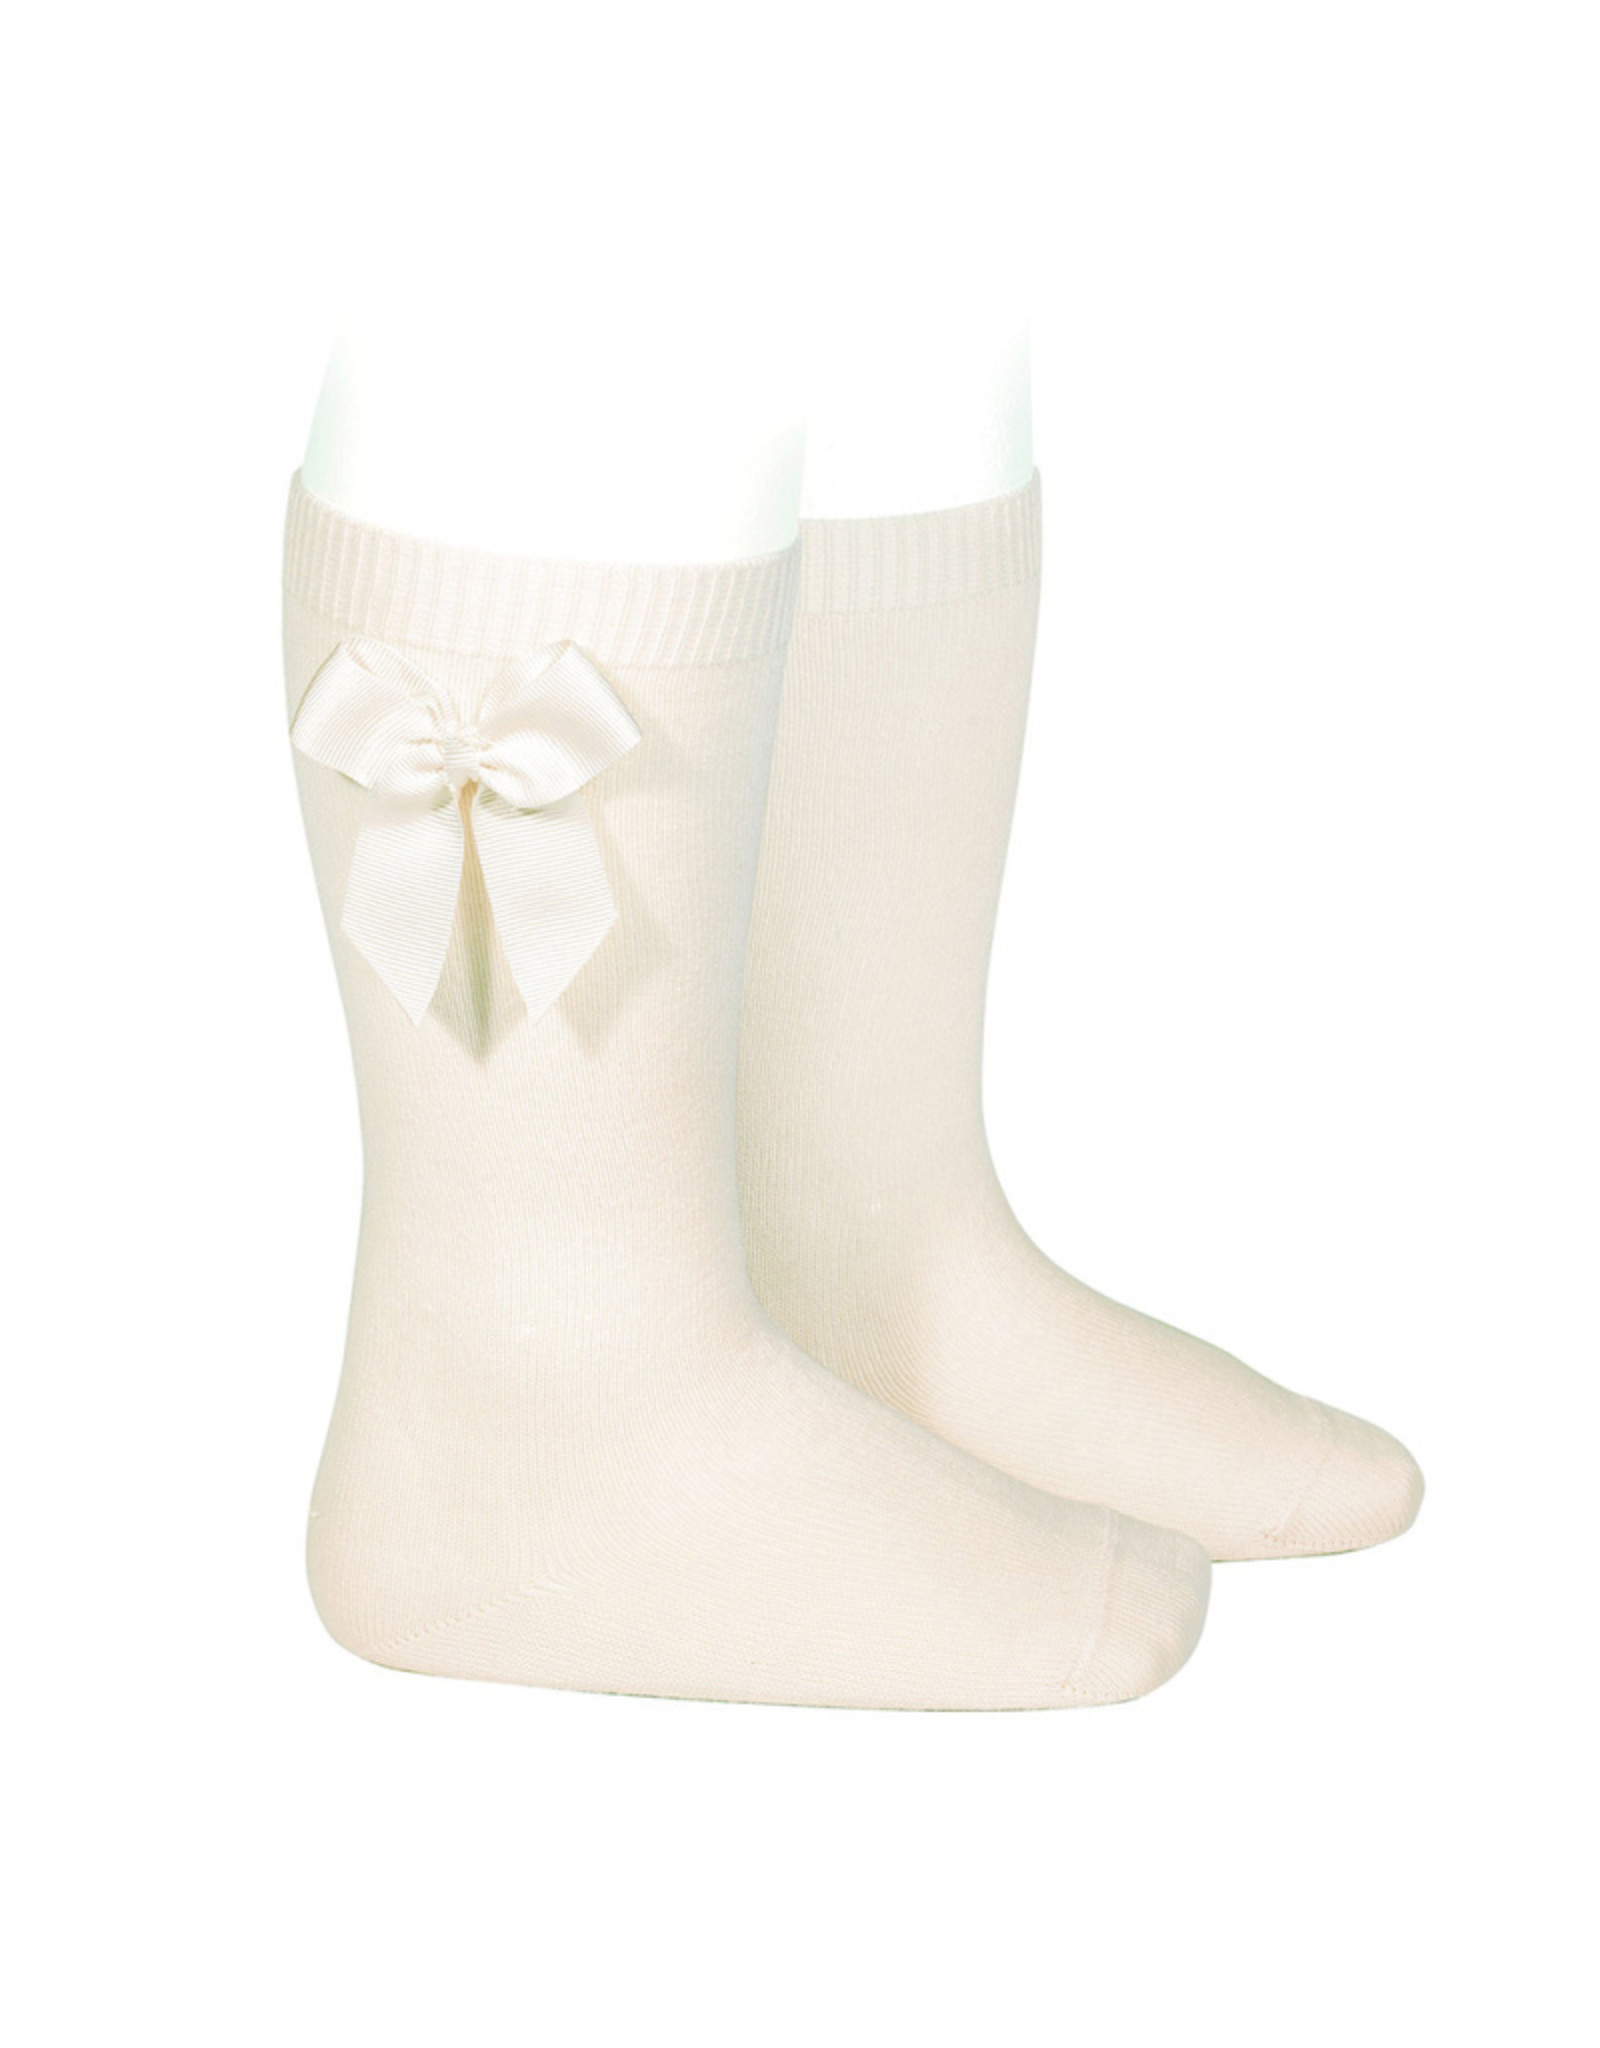 CONDOR Beige Knee Socks with Bow